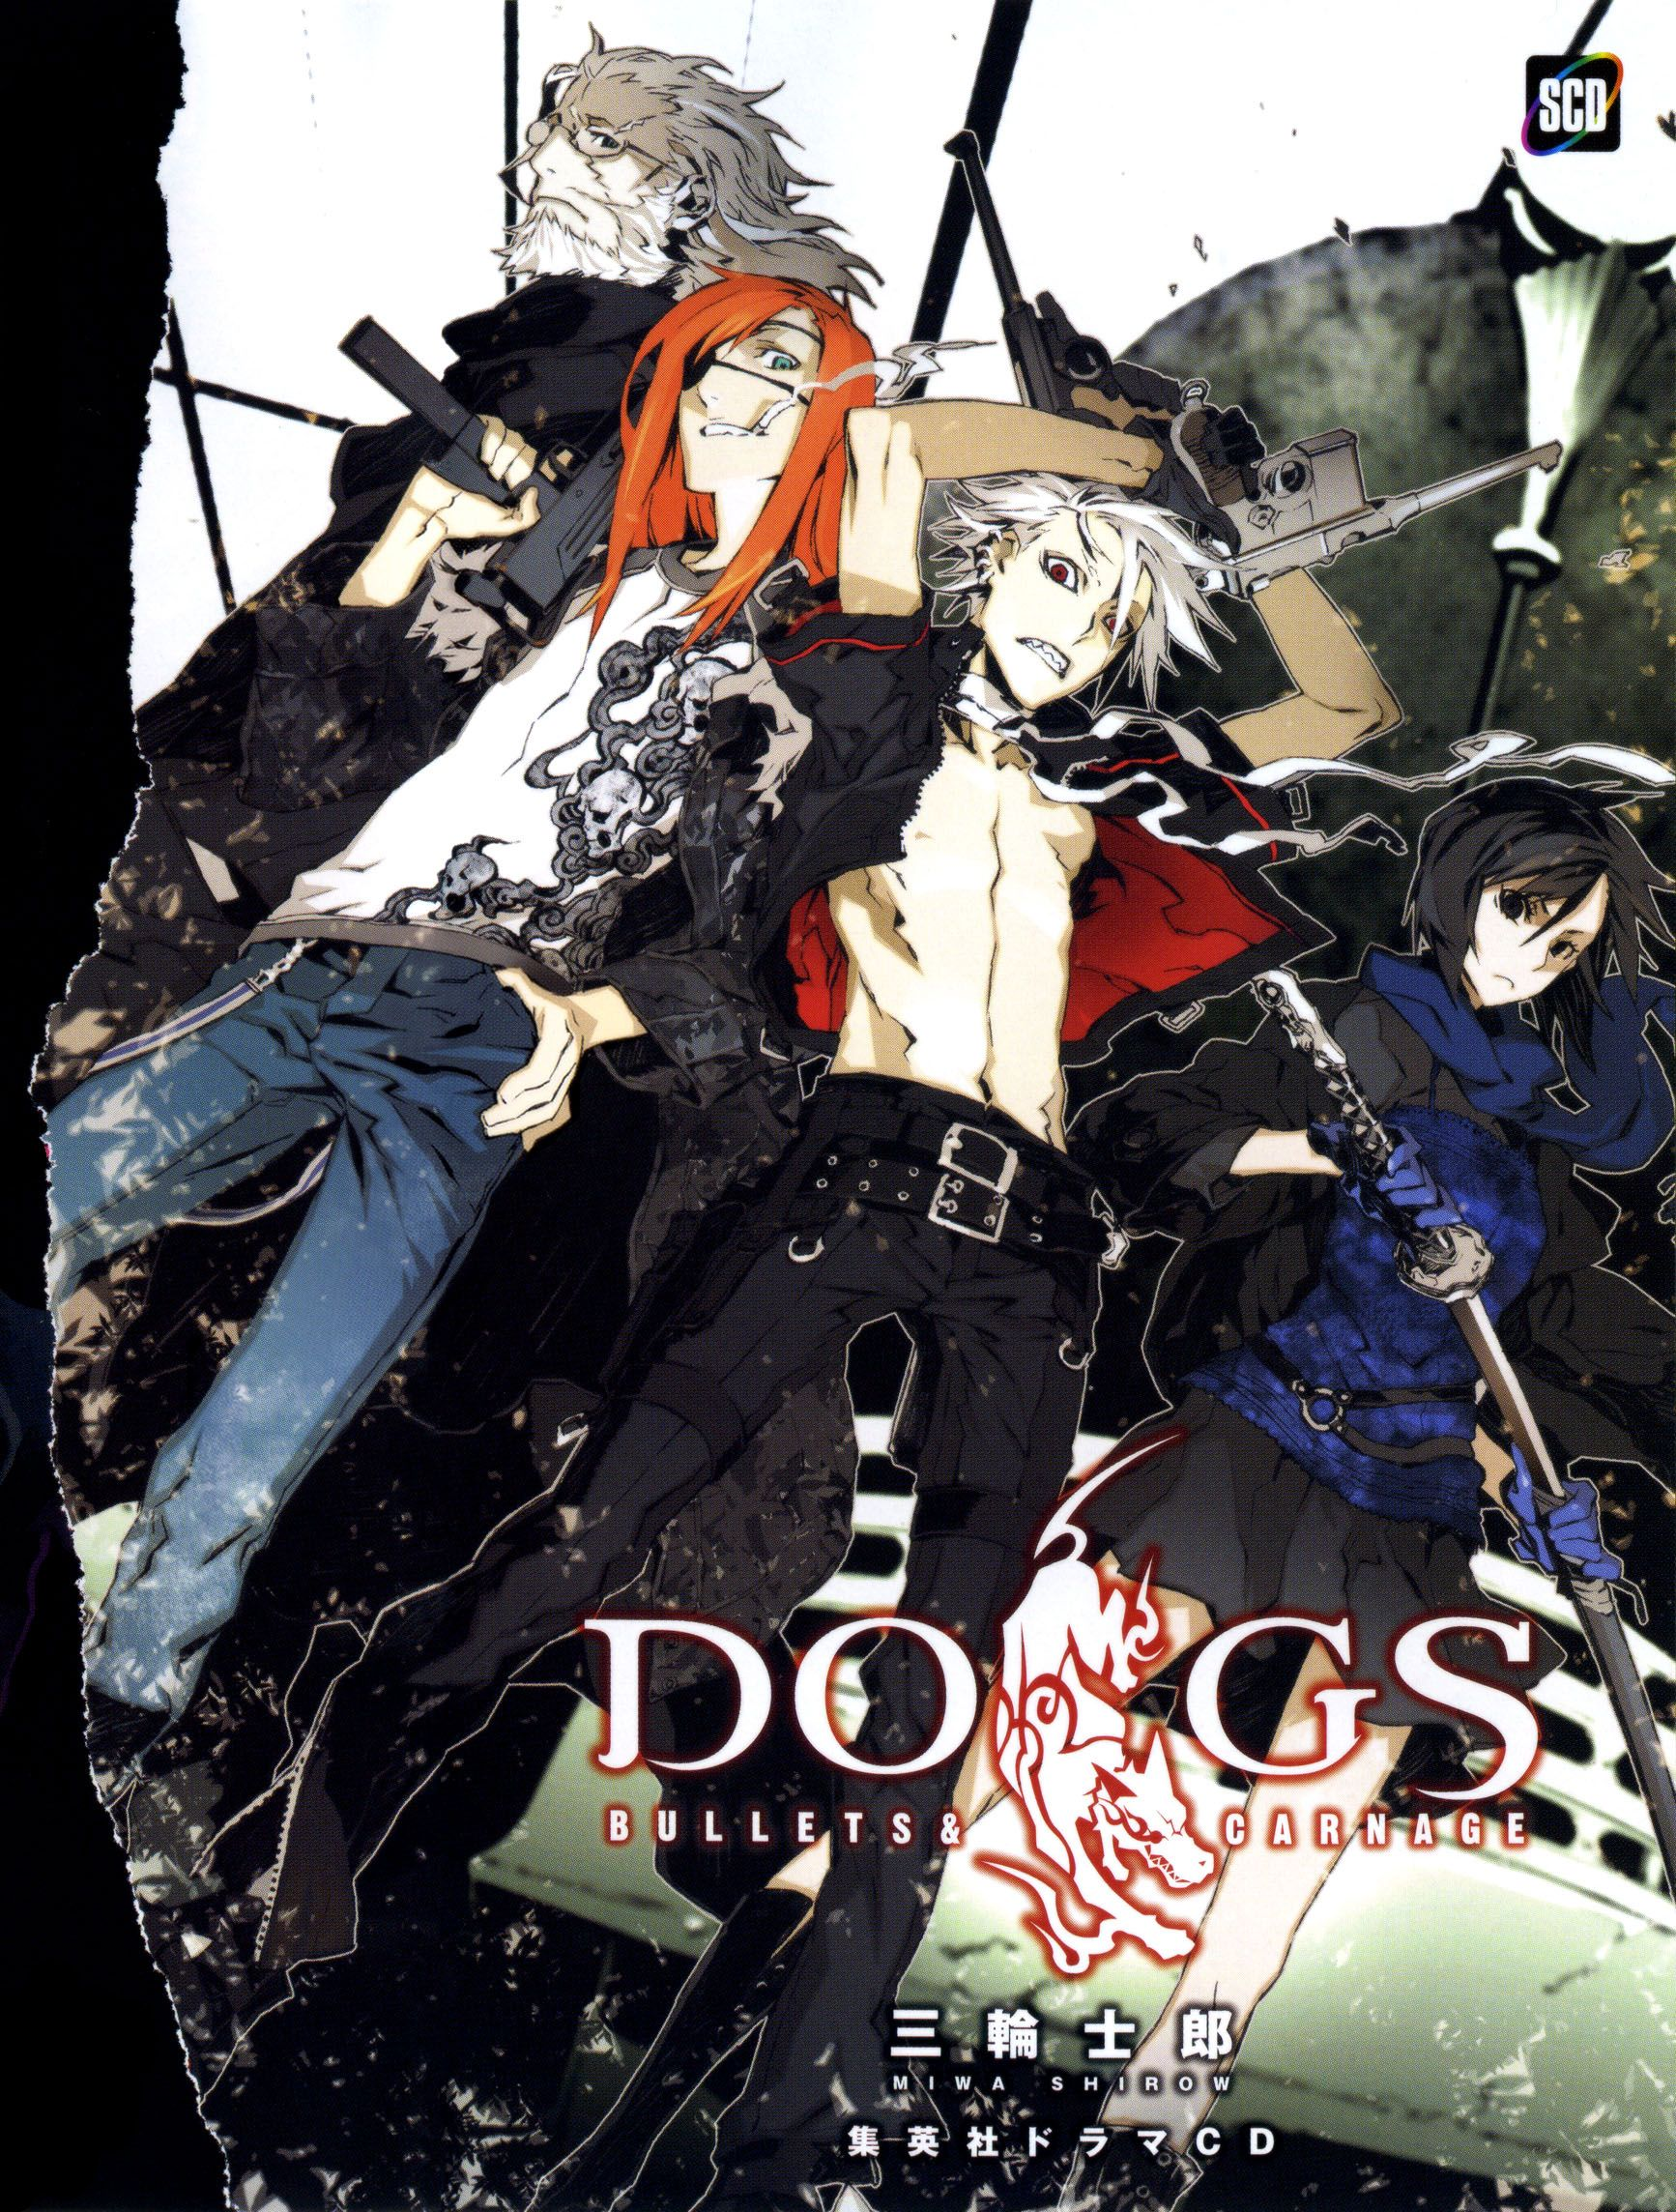 DOGS Bullets and Carnage Manga DOGS Stray Dogs Howling